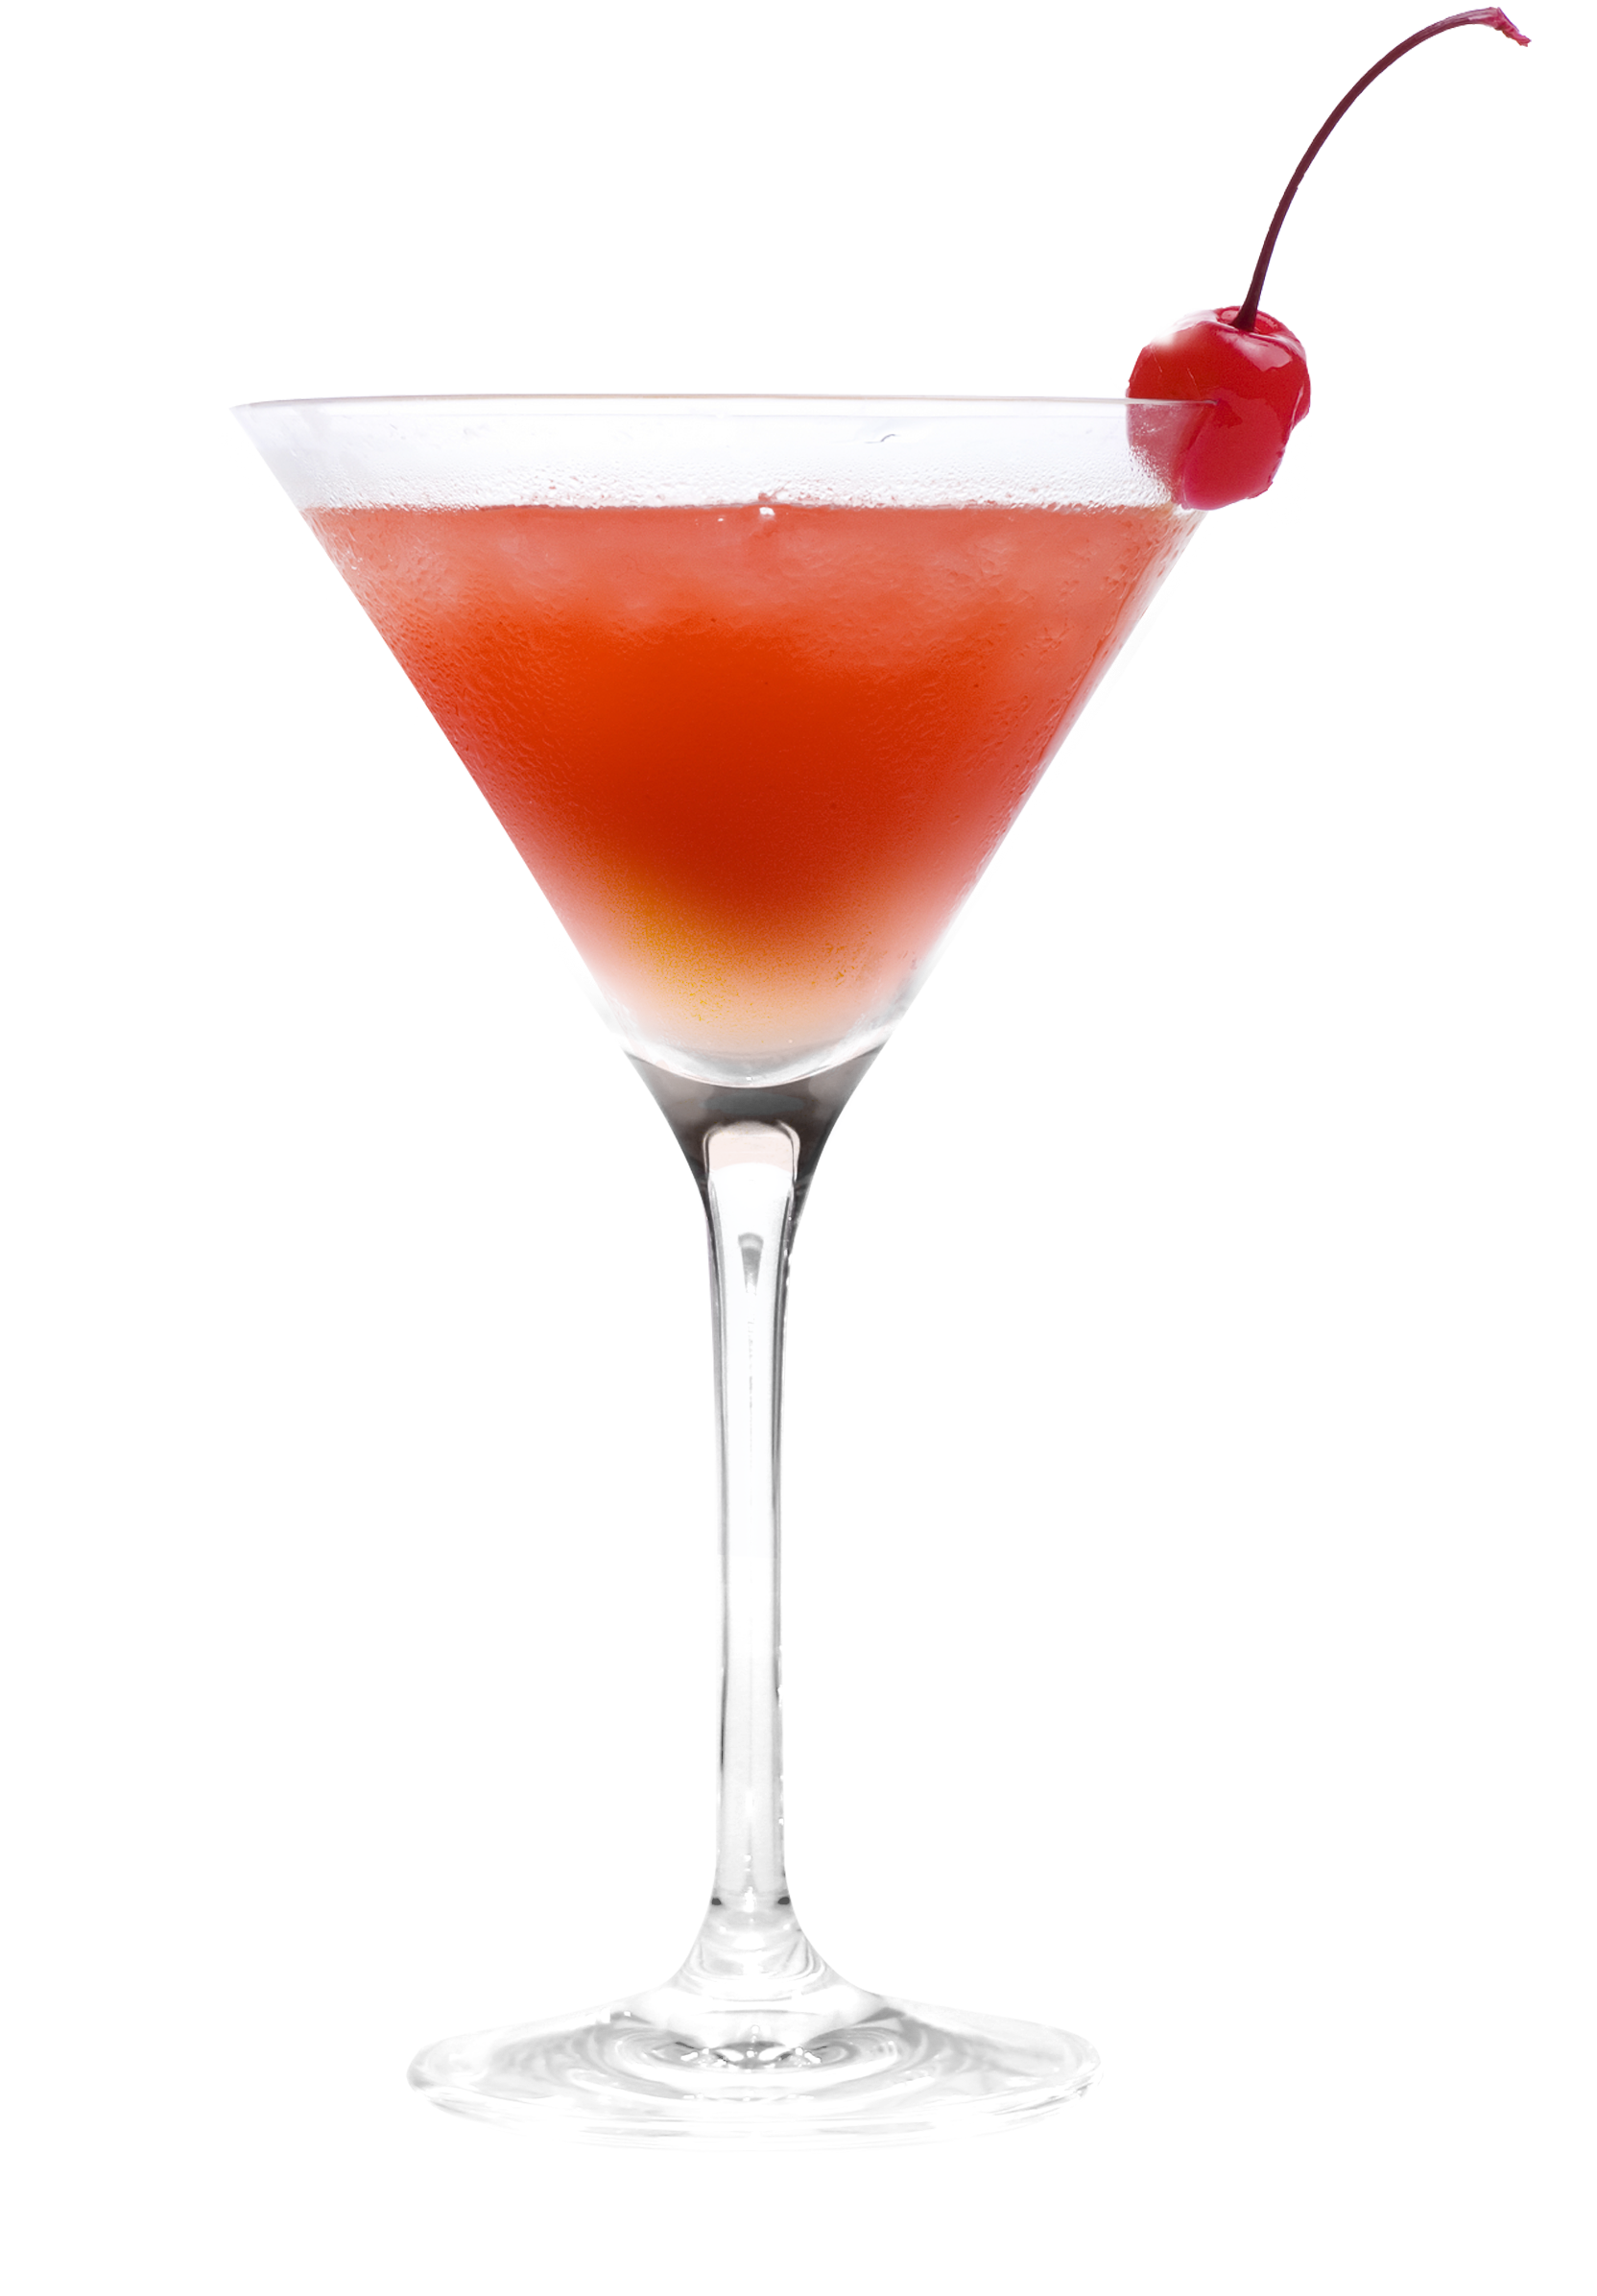 Cocktail png images transparent. Shot clipart mixed drink